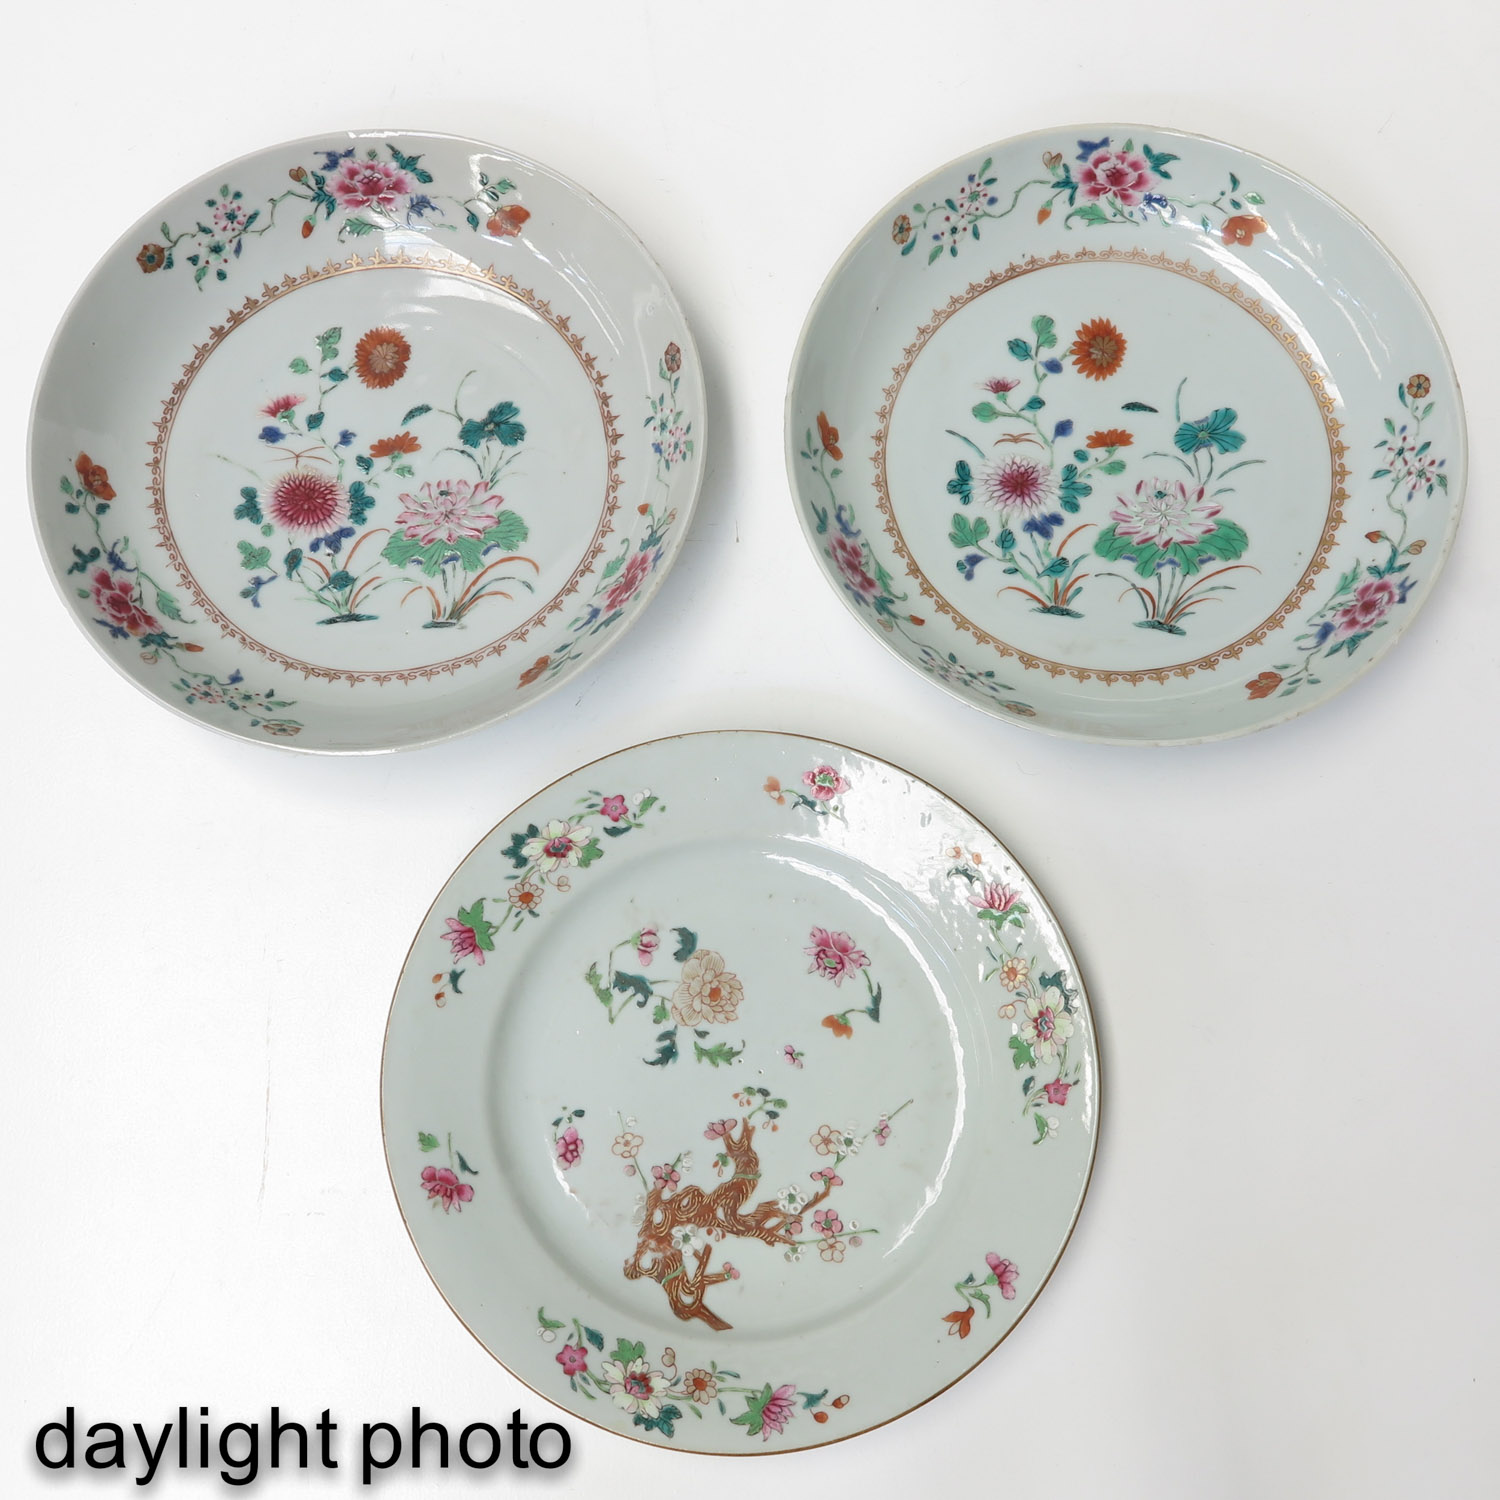 A Collection of 3 Famille Rose Plates - Image 9 of 10